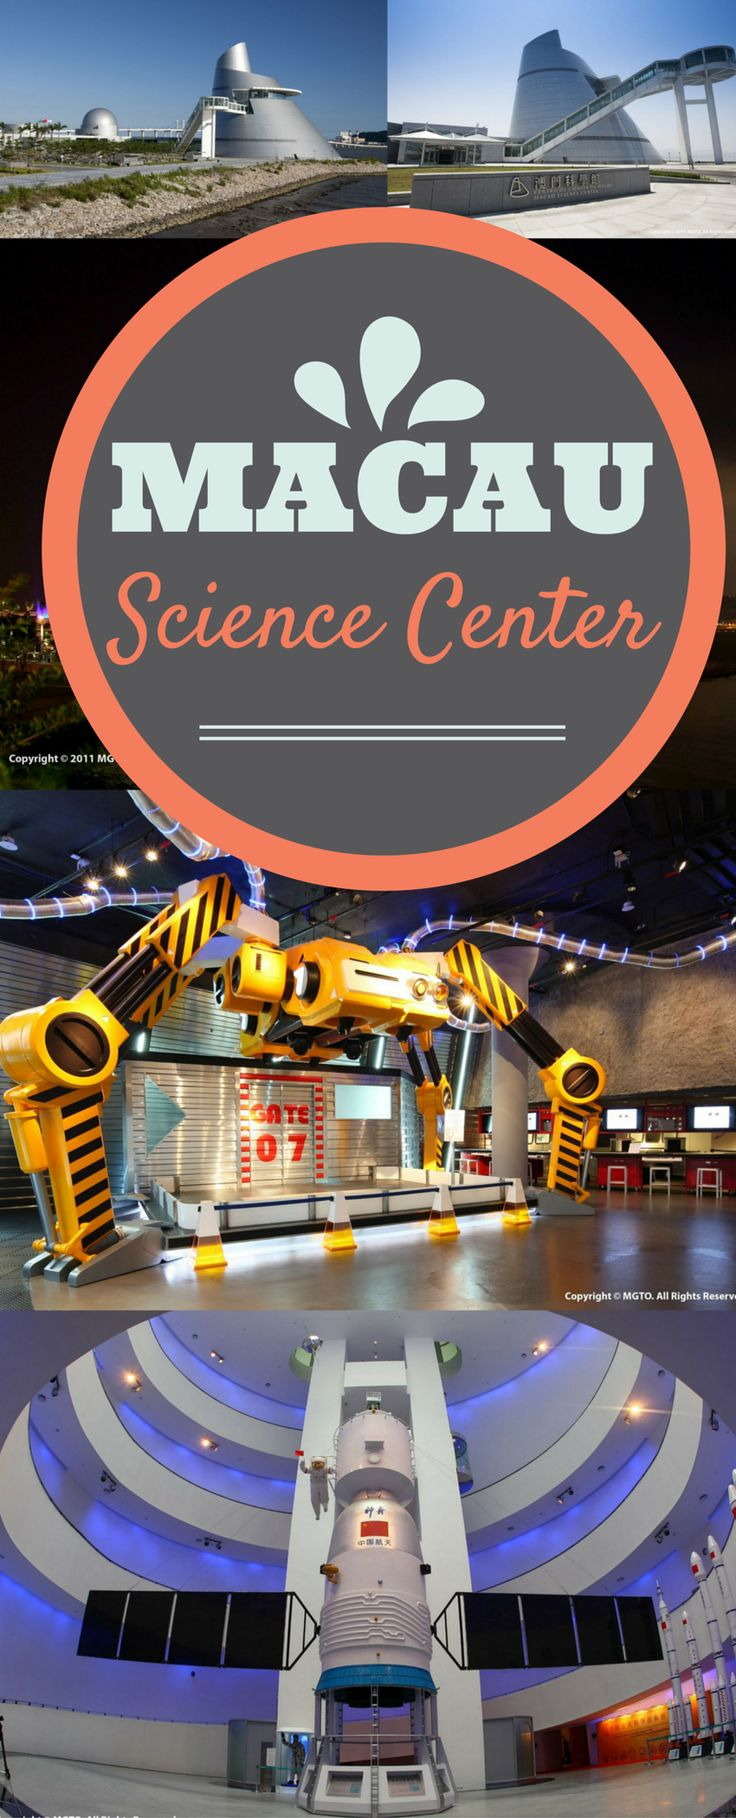 Learn from Macau's Science Center.